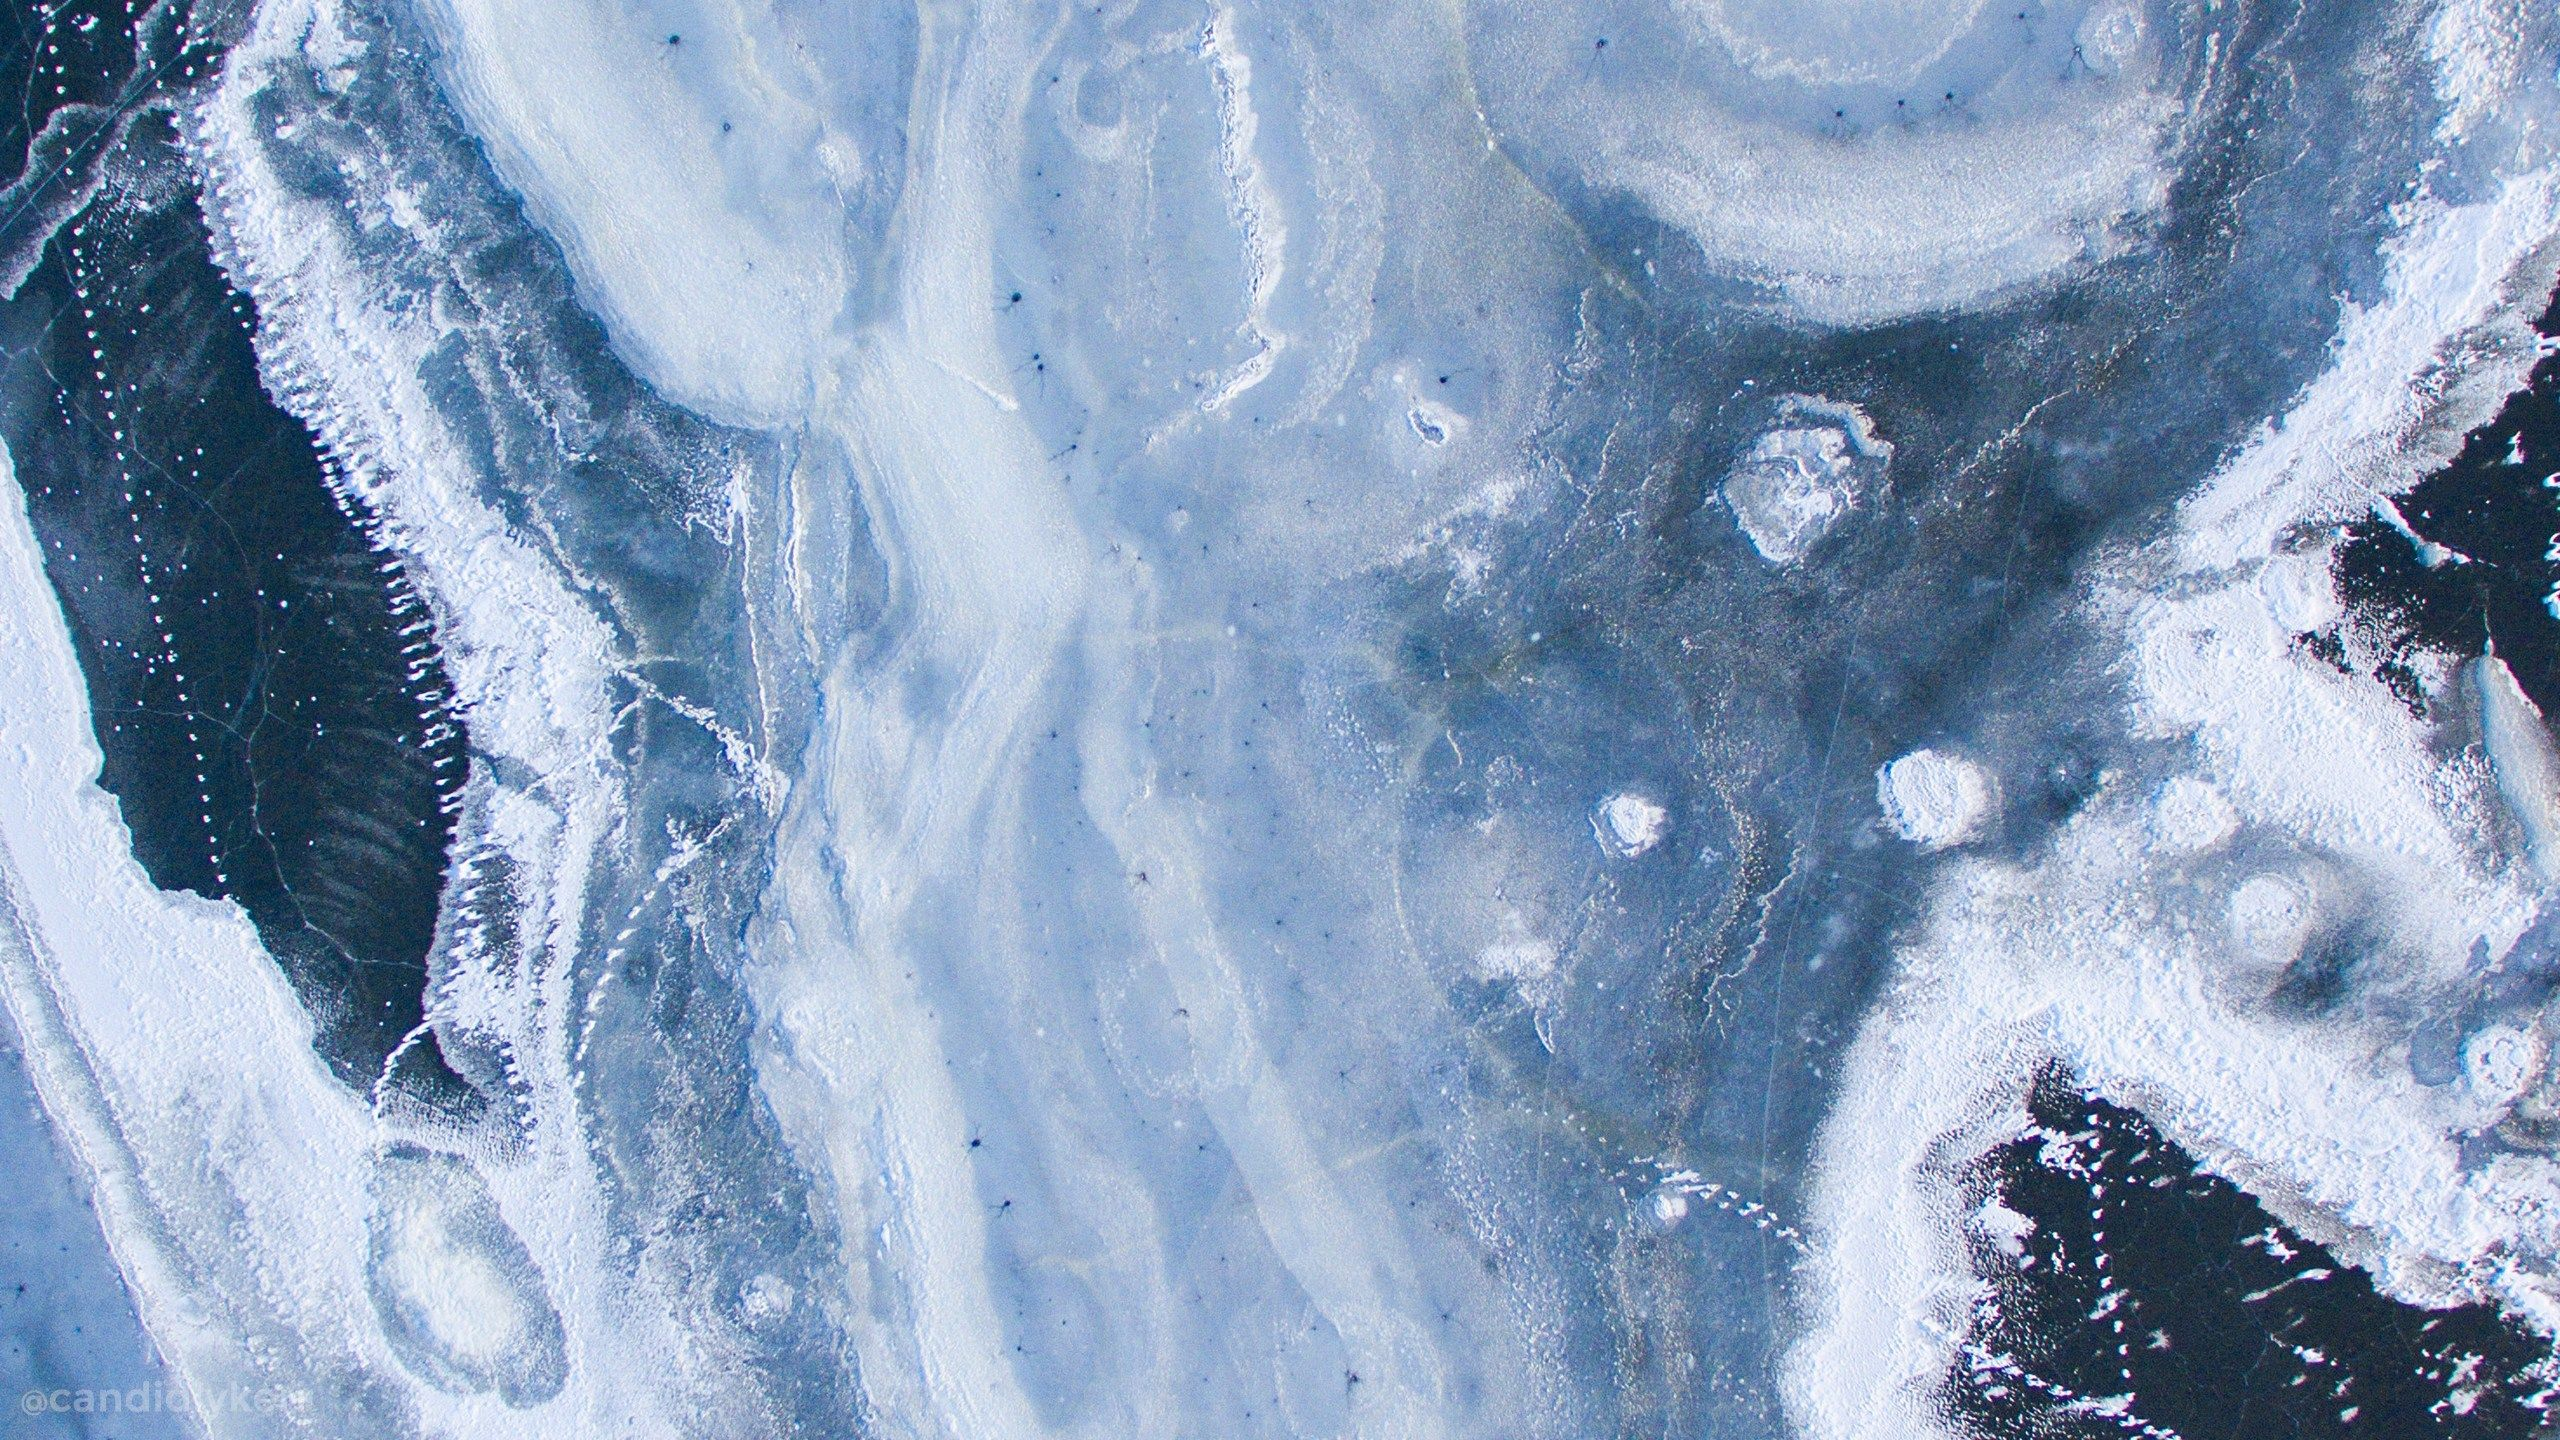 Aesthetic Cute Marble Wallpaper For Laptop